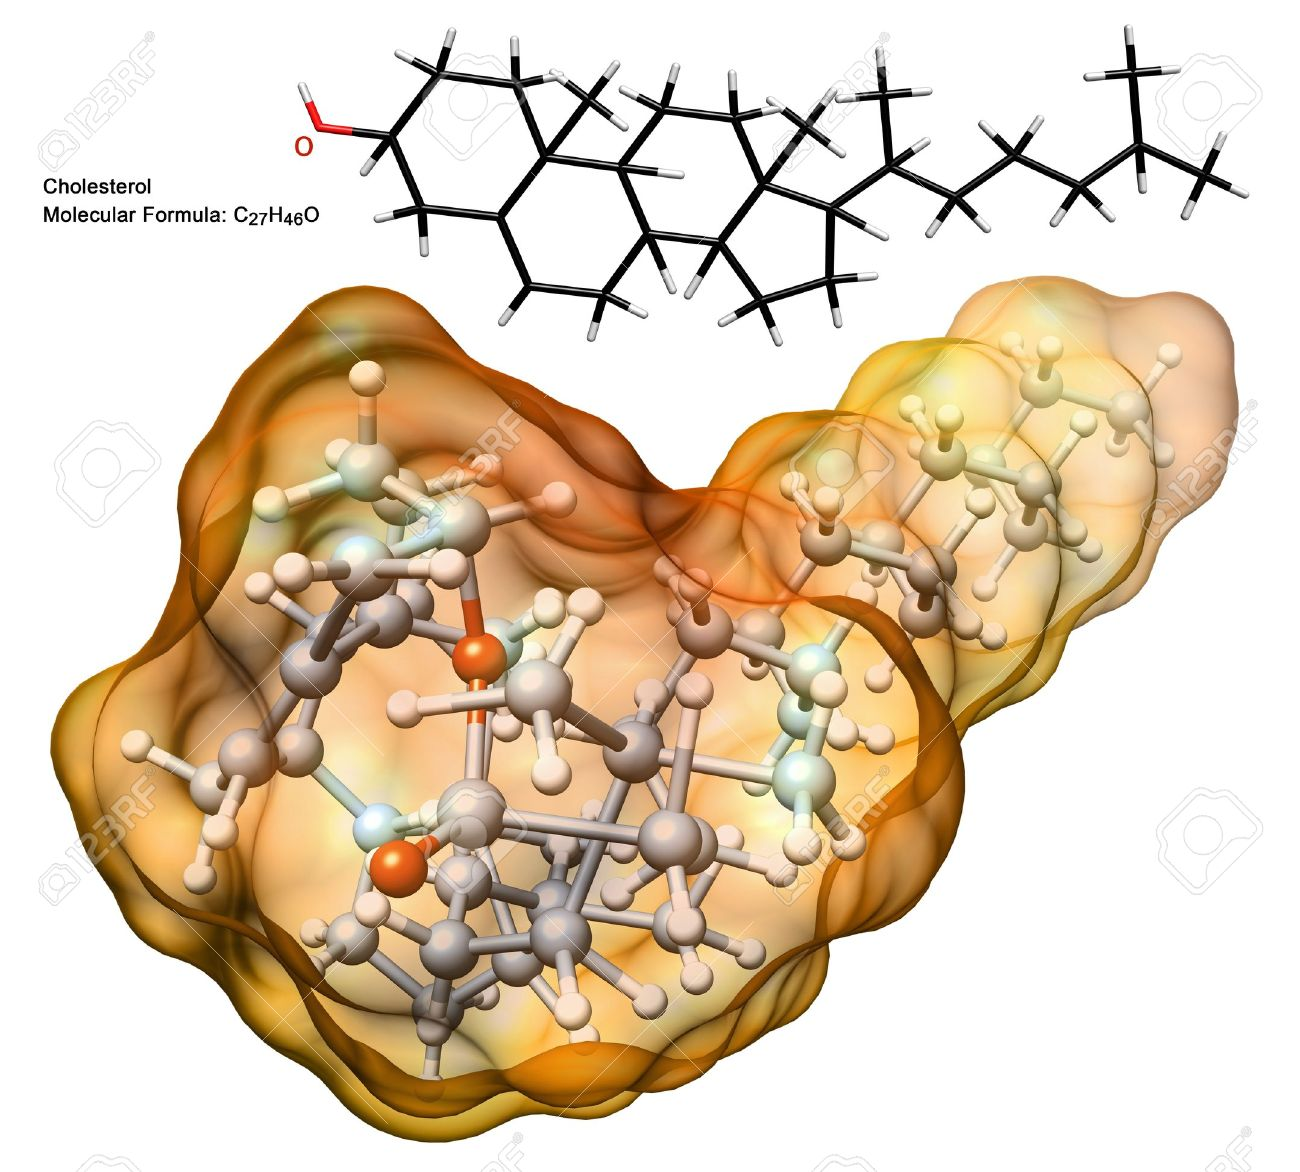 organic chemistry: 3d structure of cholesterol molecule with chemical formula and 2d model - illustration of biological particle isolated Stock Photo - 17631414